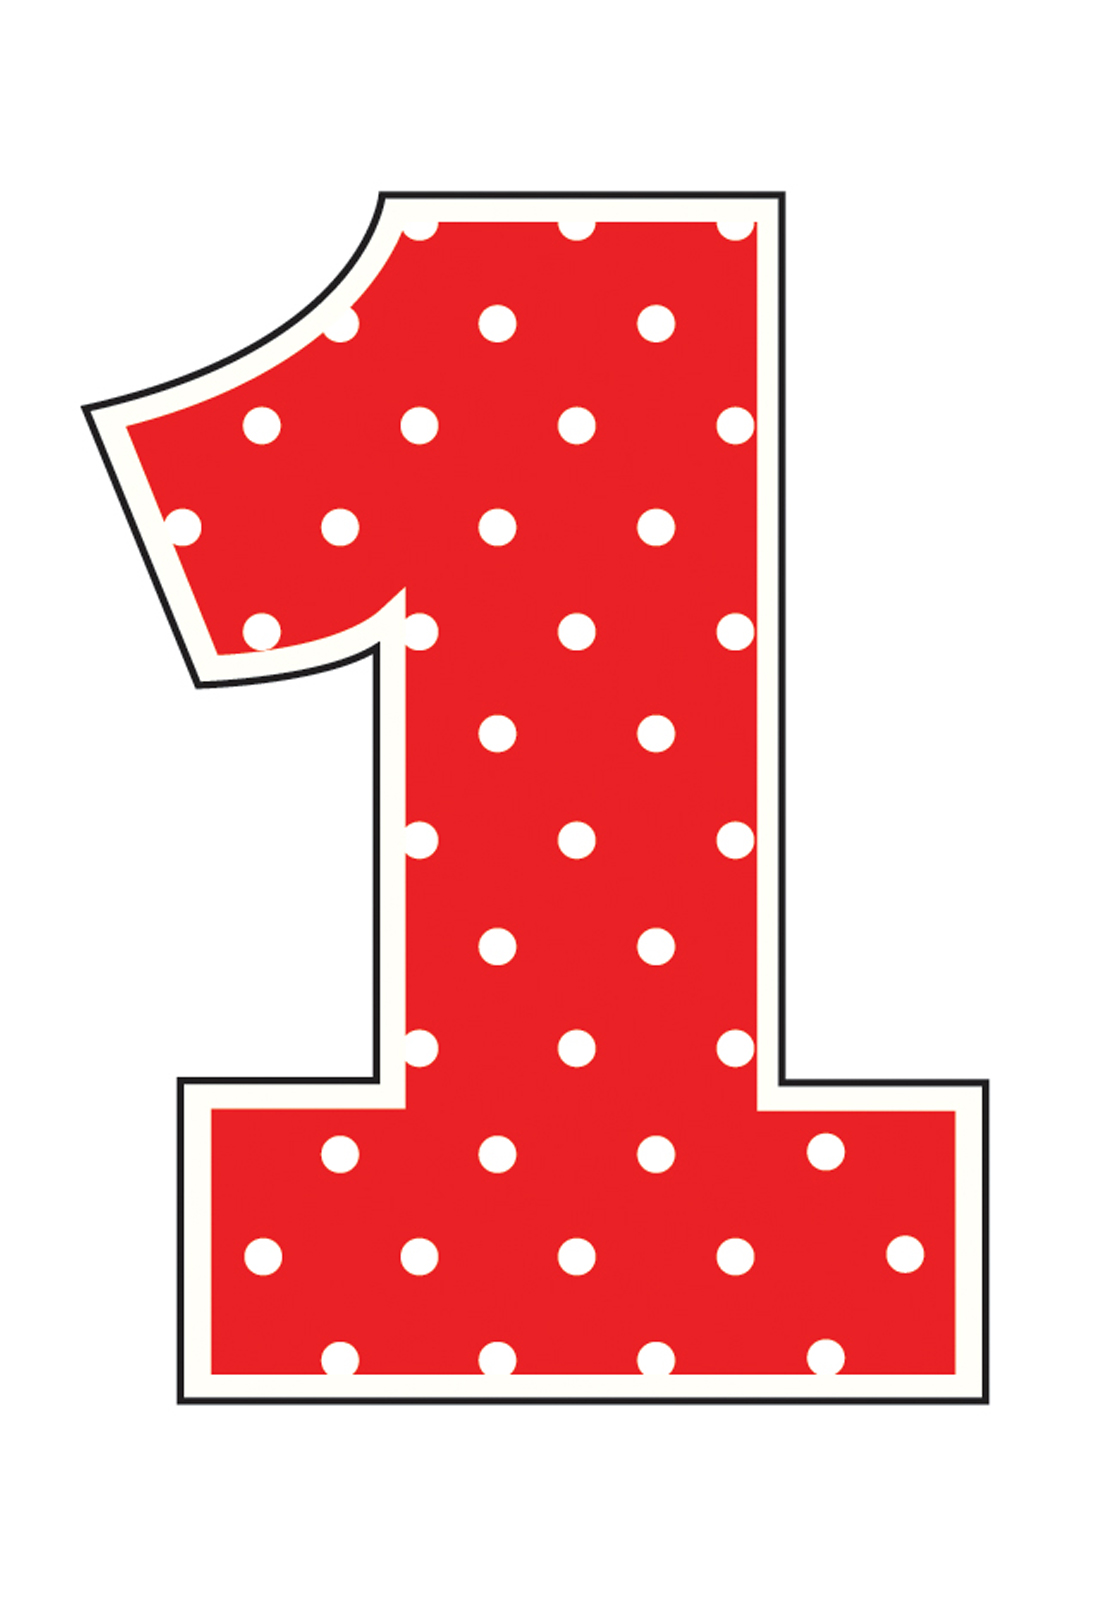 Clip Art Number 1 Clip Art red number 1 clipart kid polka dot candle thepartyworks